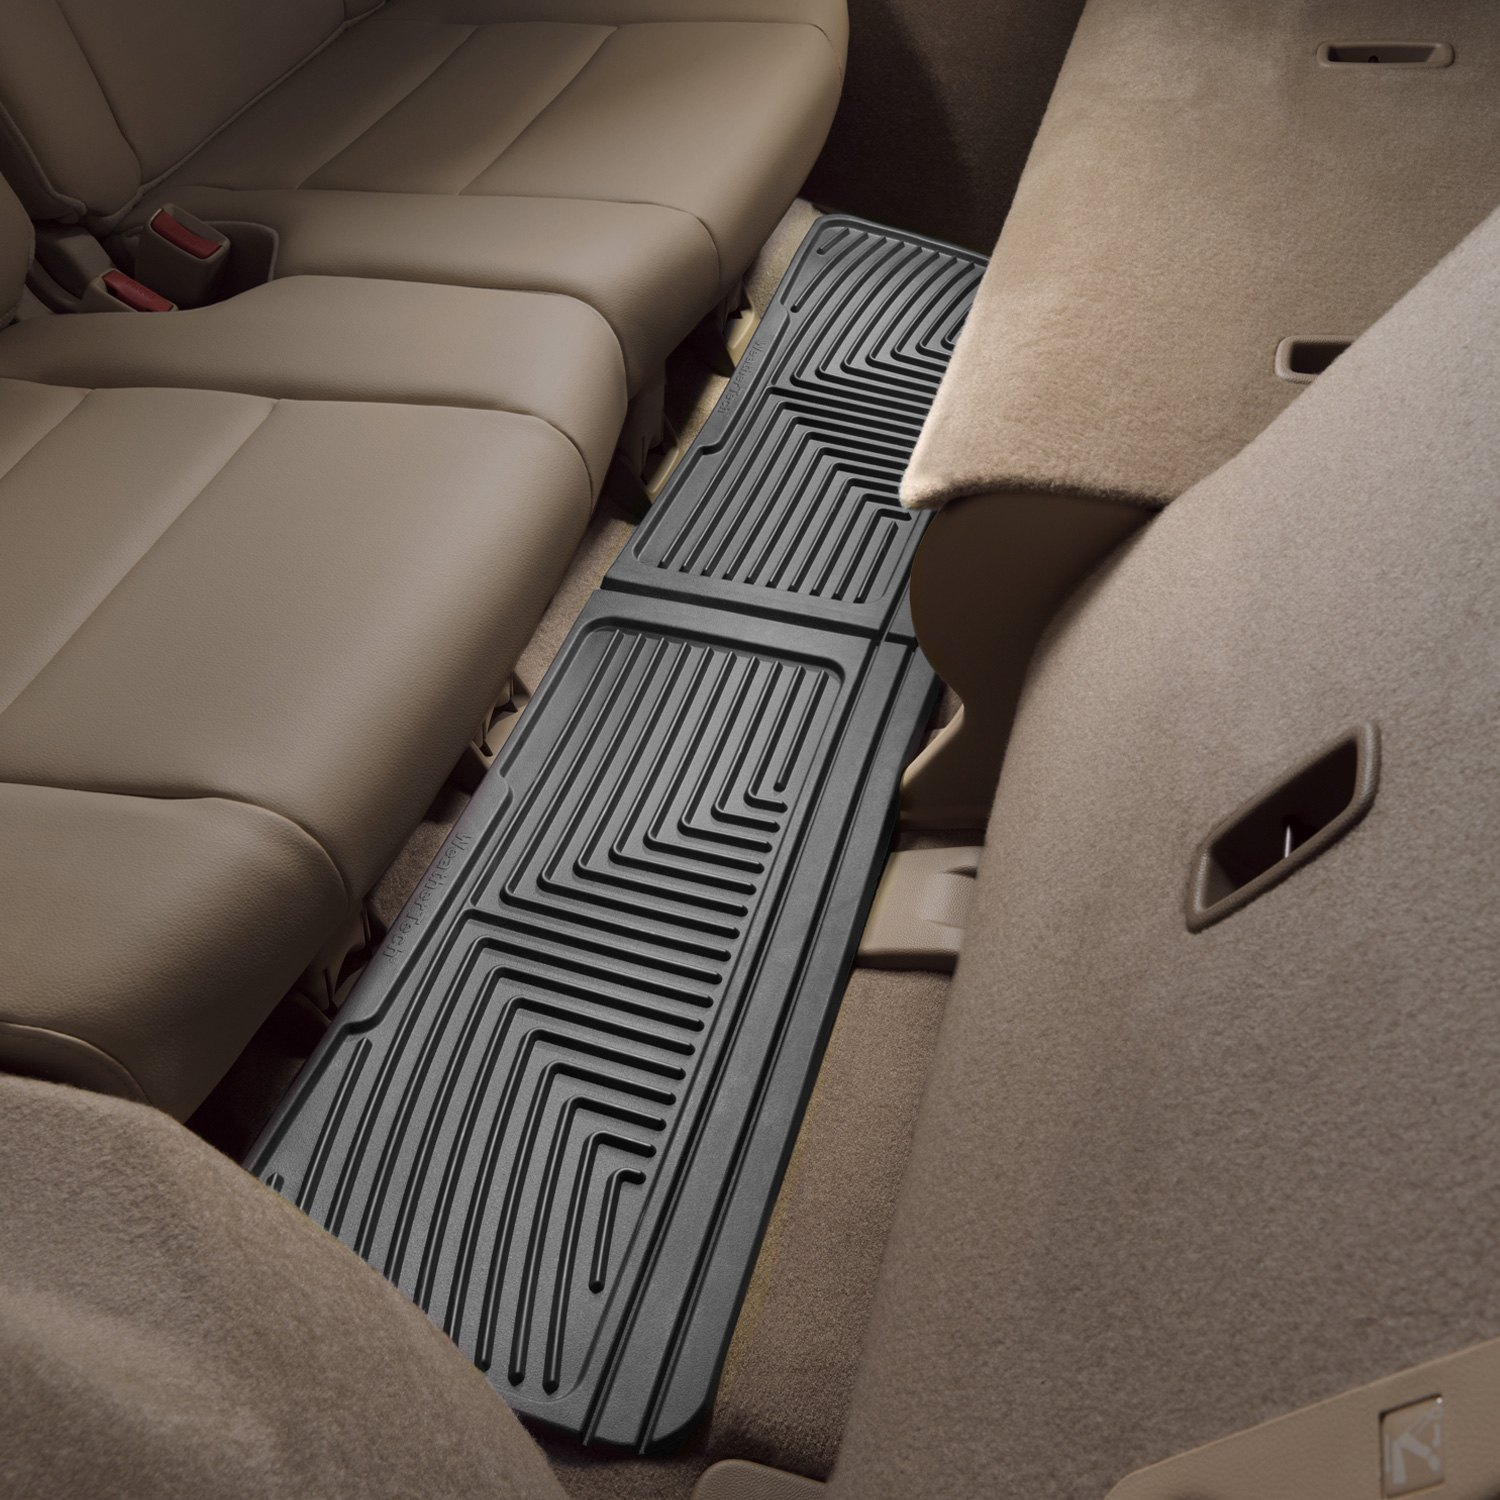 quality carpet liner styling for fit car best duty at price floor product heavy cheap volvo mats custom